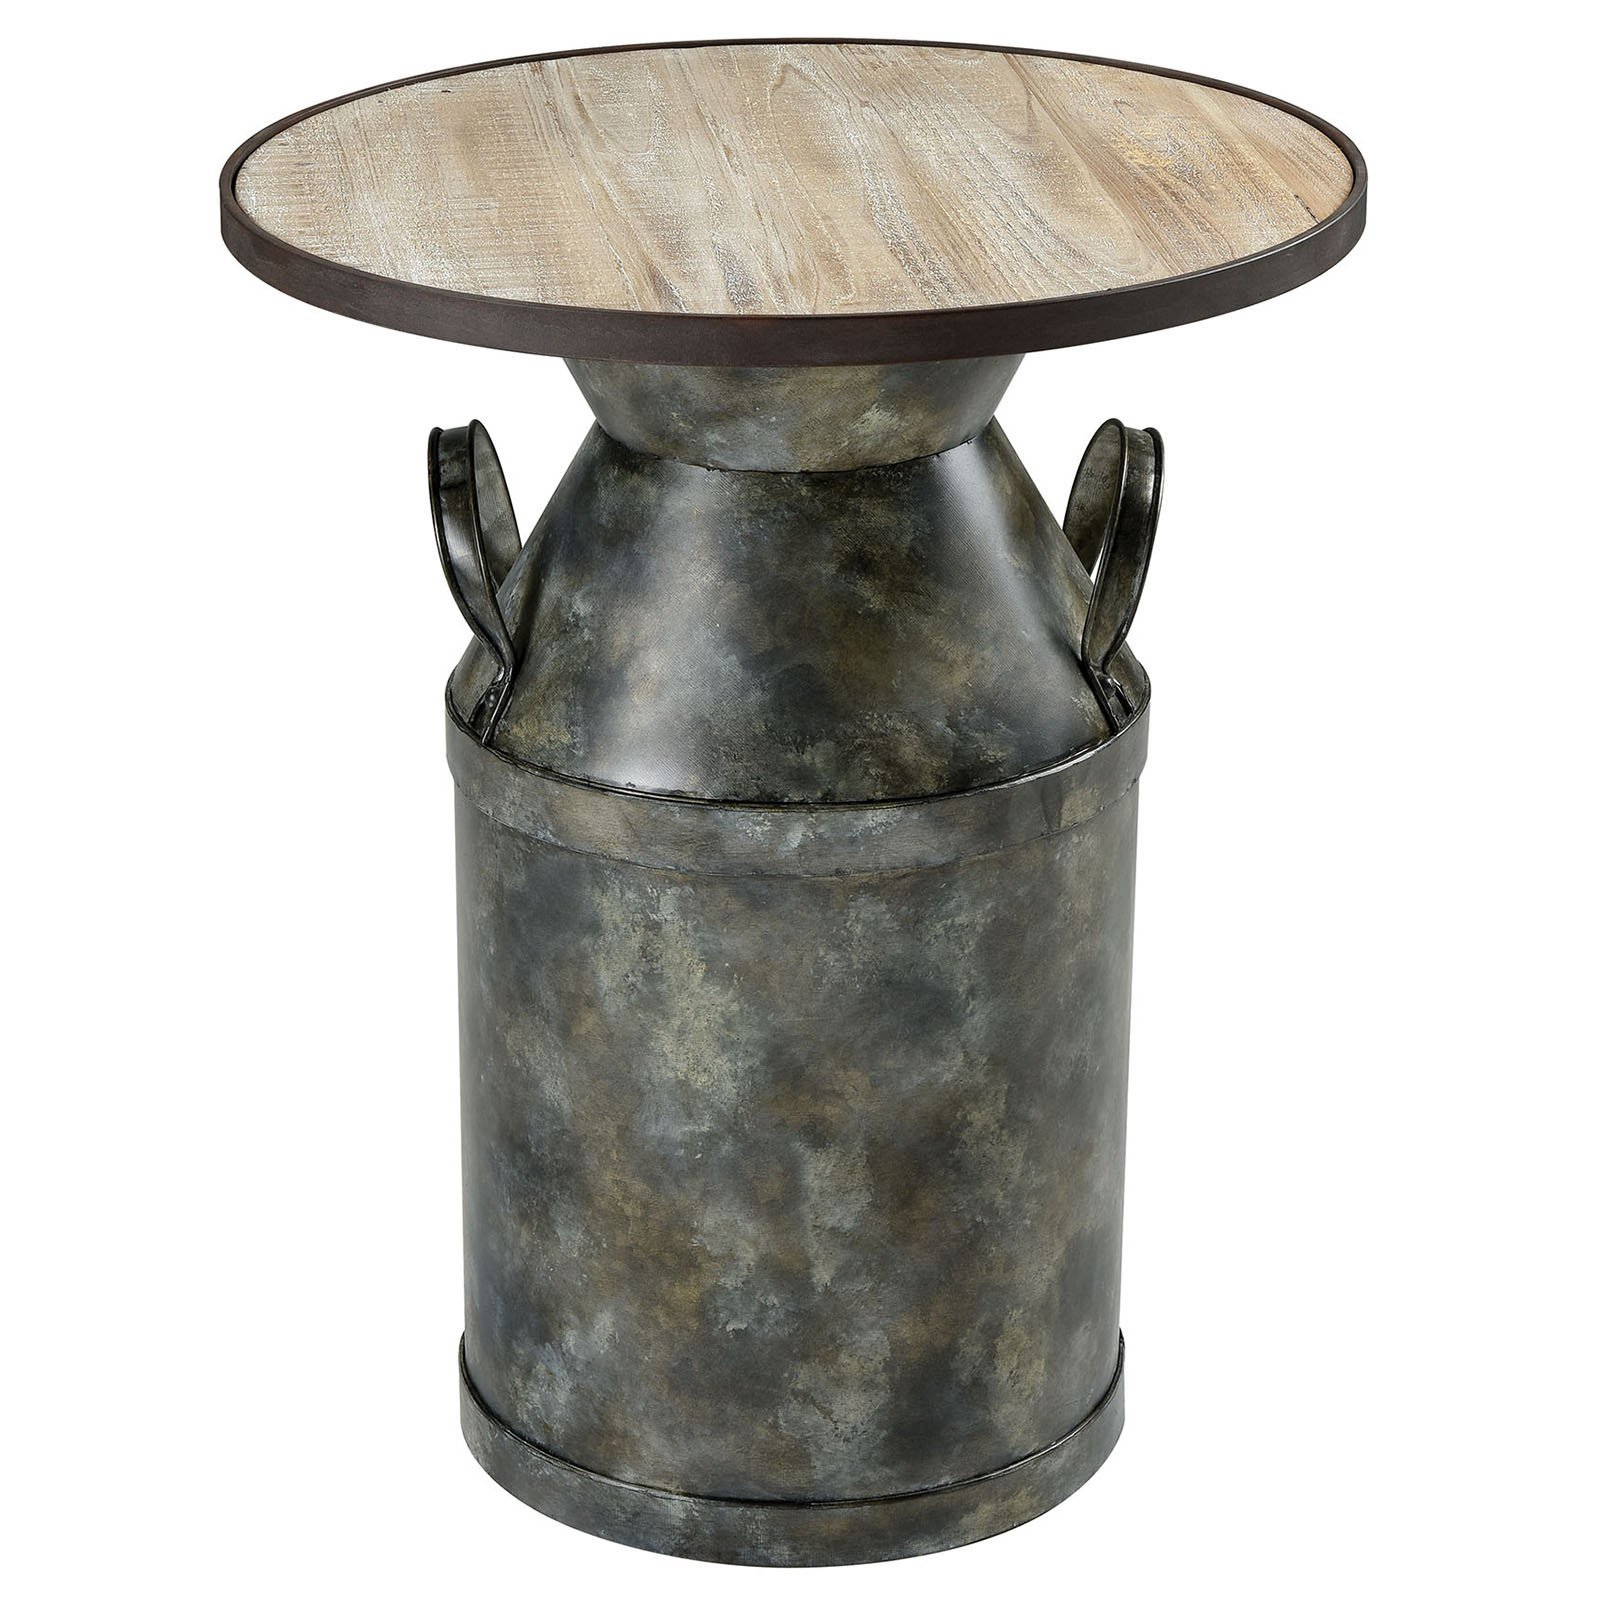 spacious skies farmhouse accent tables antique black fratantoni table lifestyles linen for round coffee with wood and metal lamp white dining plate mat floor narrow acrylic